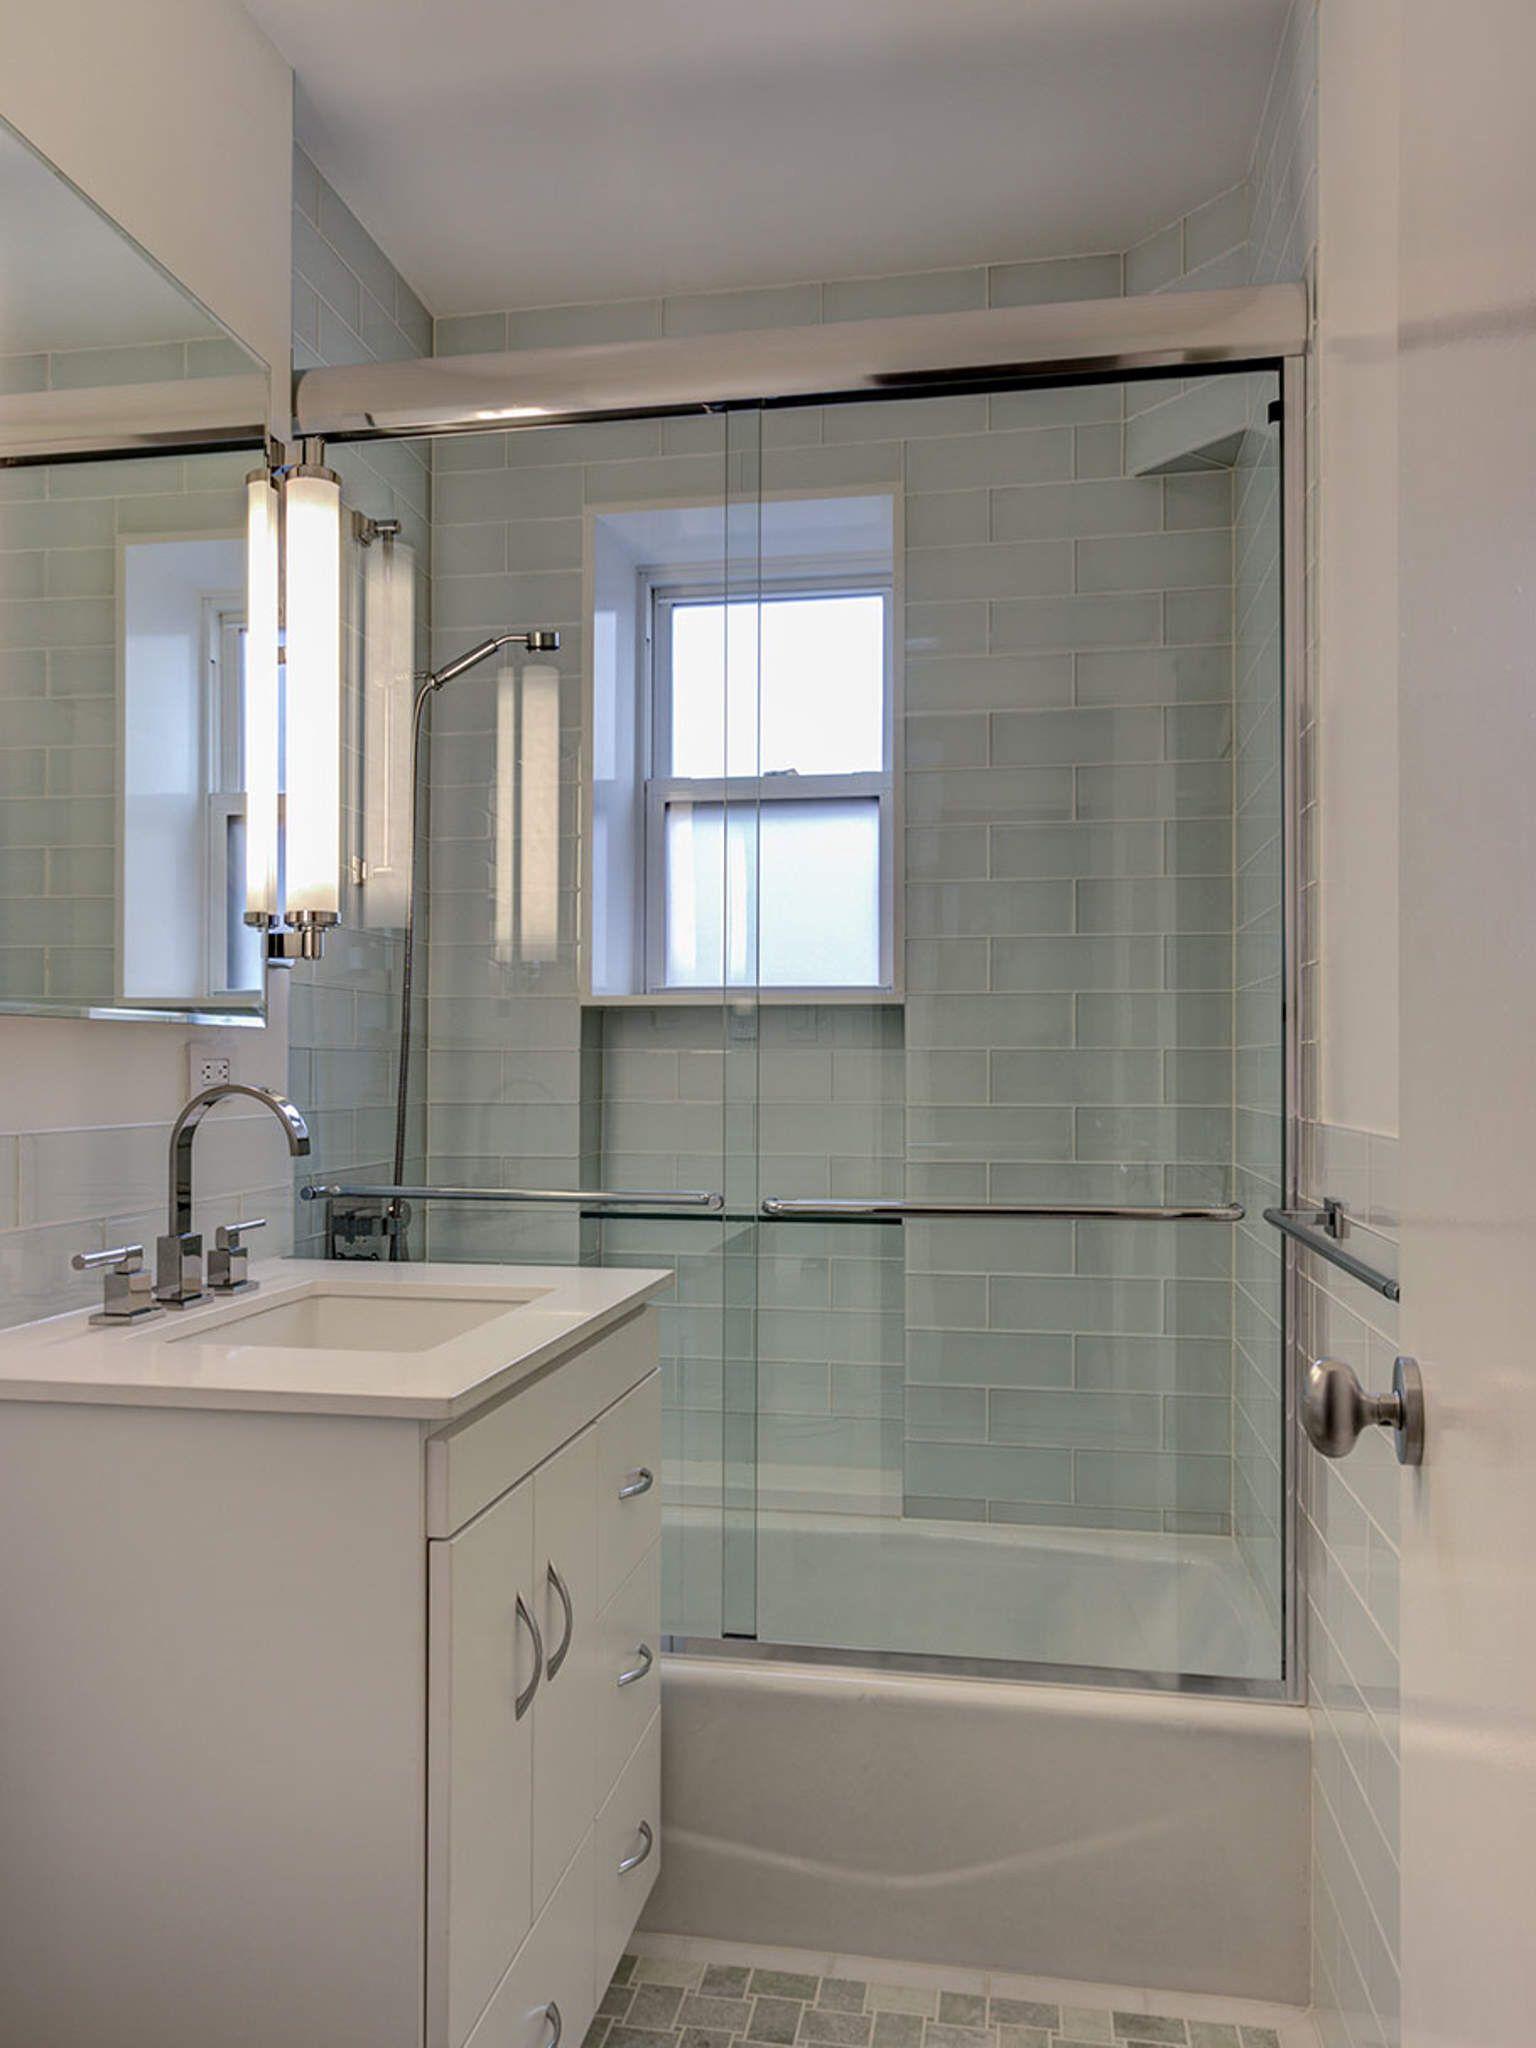 Second suite bath ideas | Bathroom vanity remodel ...